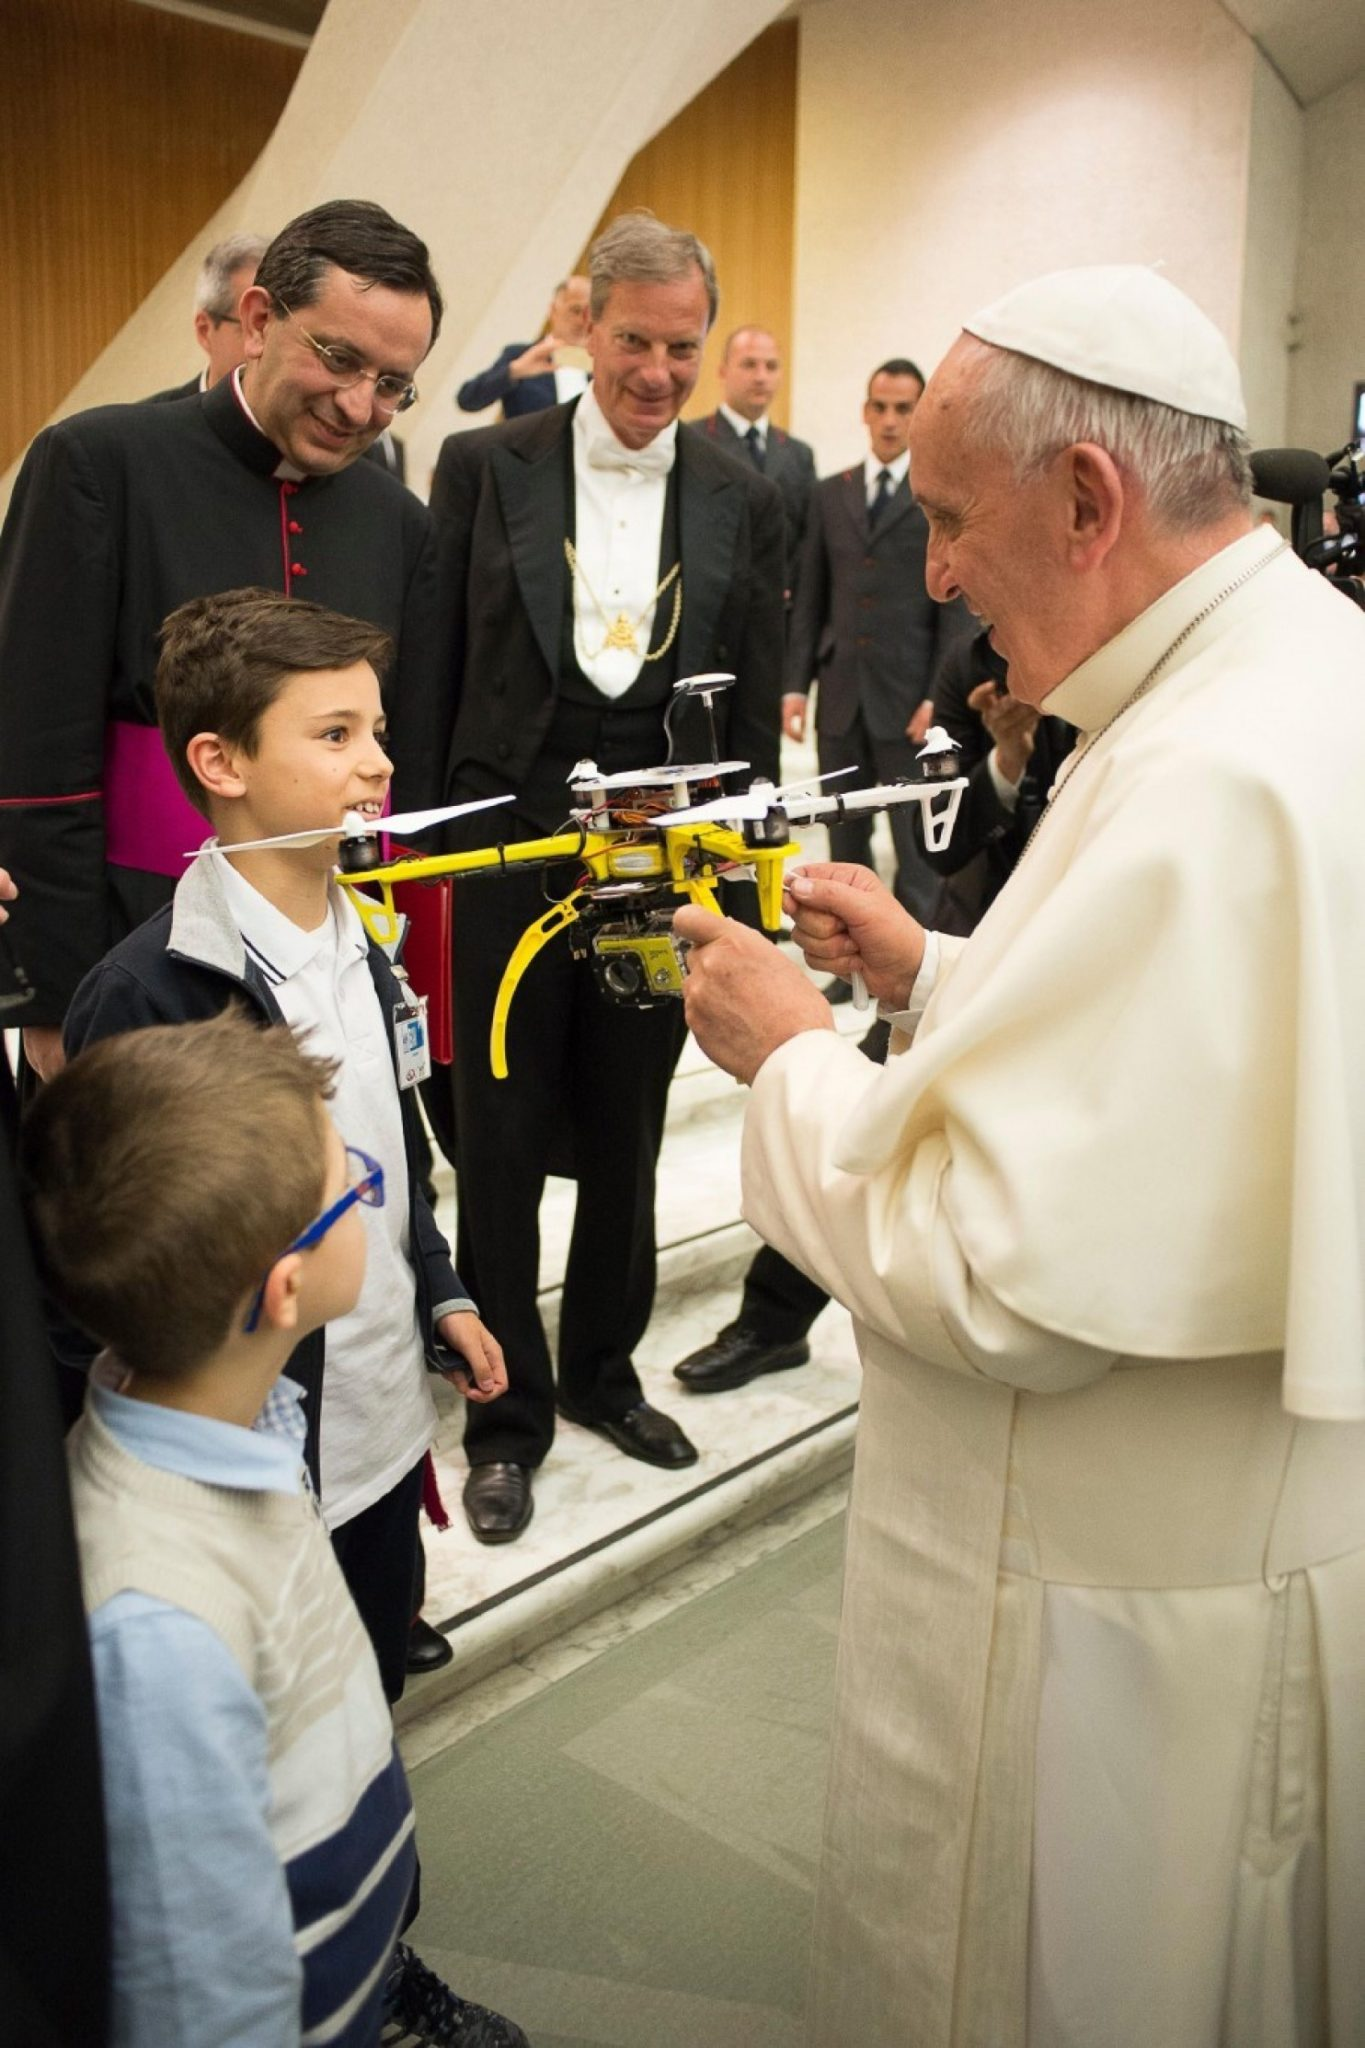 Pope Francis has a drone of his very own - sUAS News - The Business of Drones